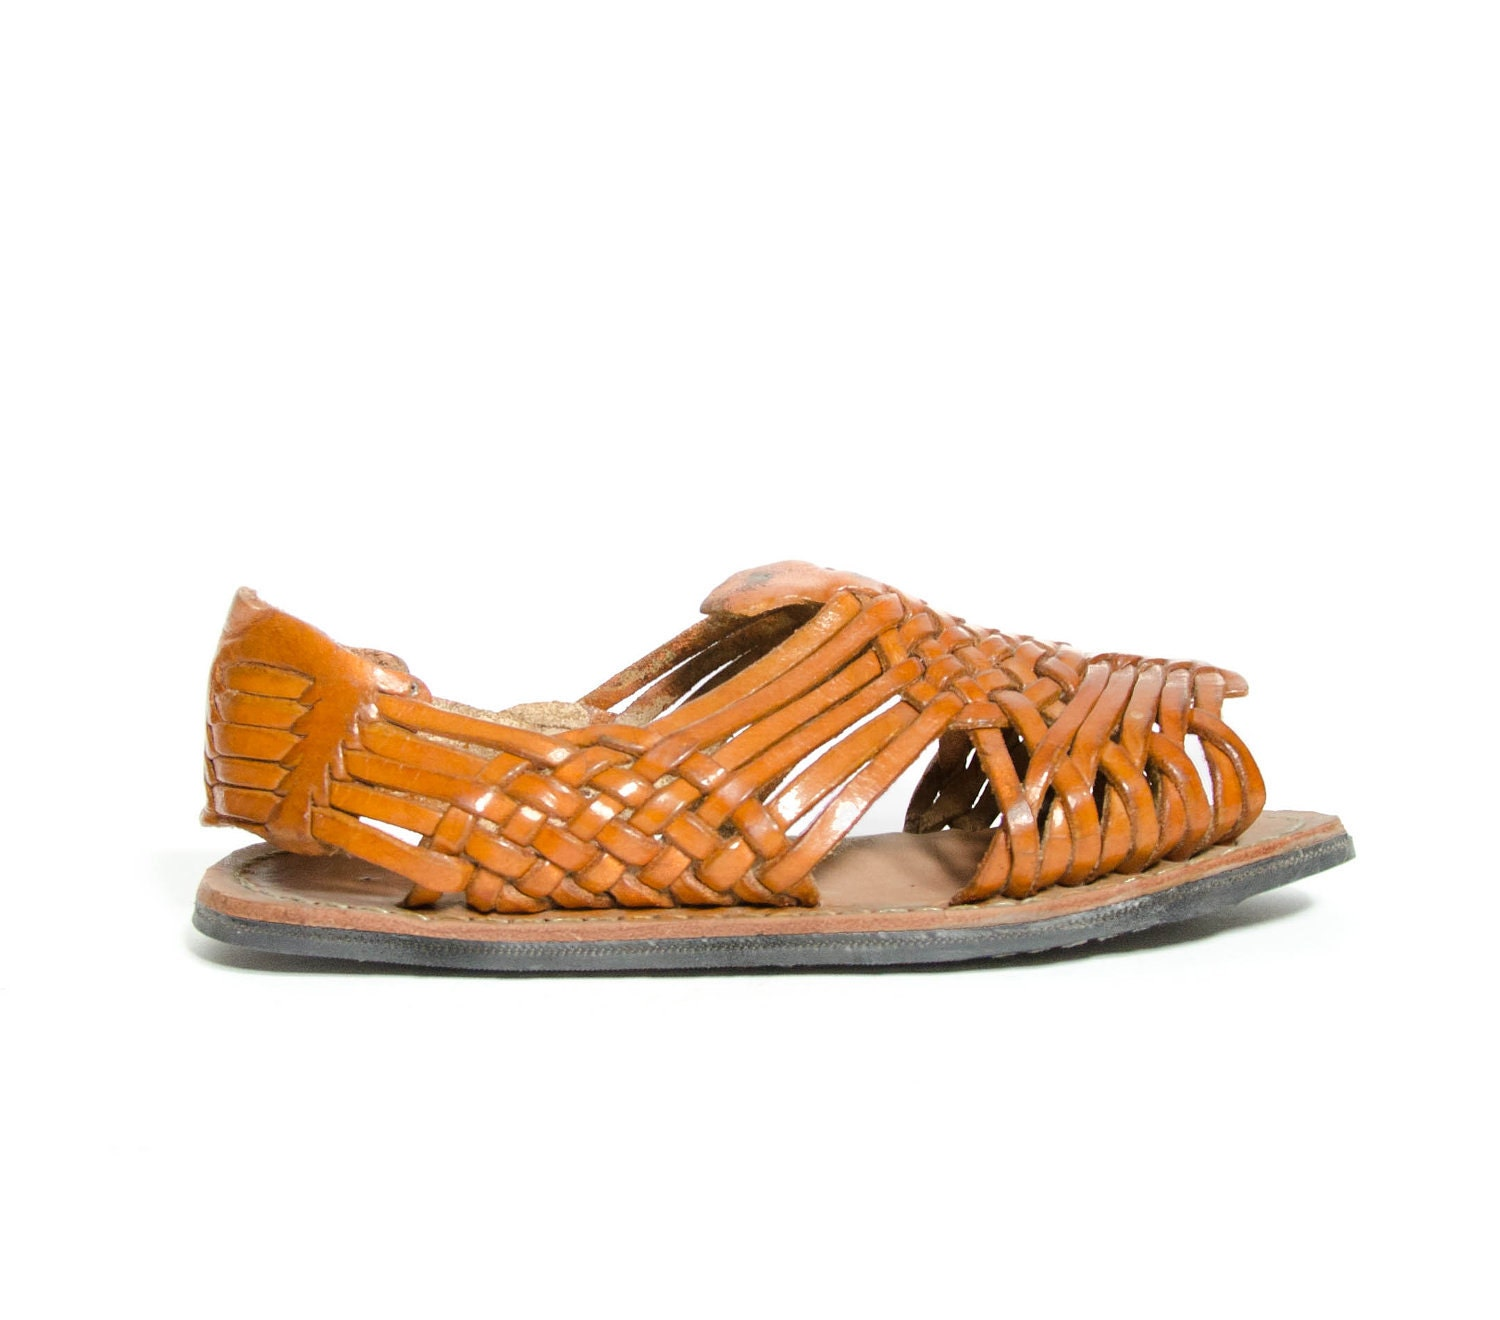 Unique Crew Womens Huarache Sandals To Preorder Call 800 261 7422 Or Email